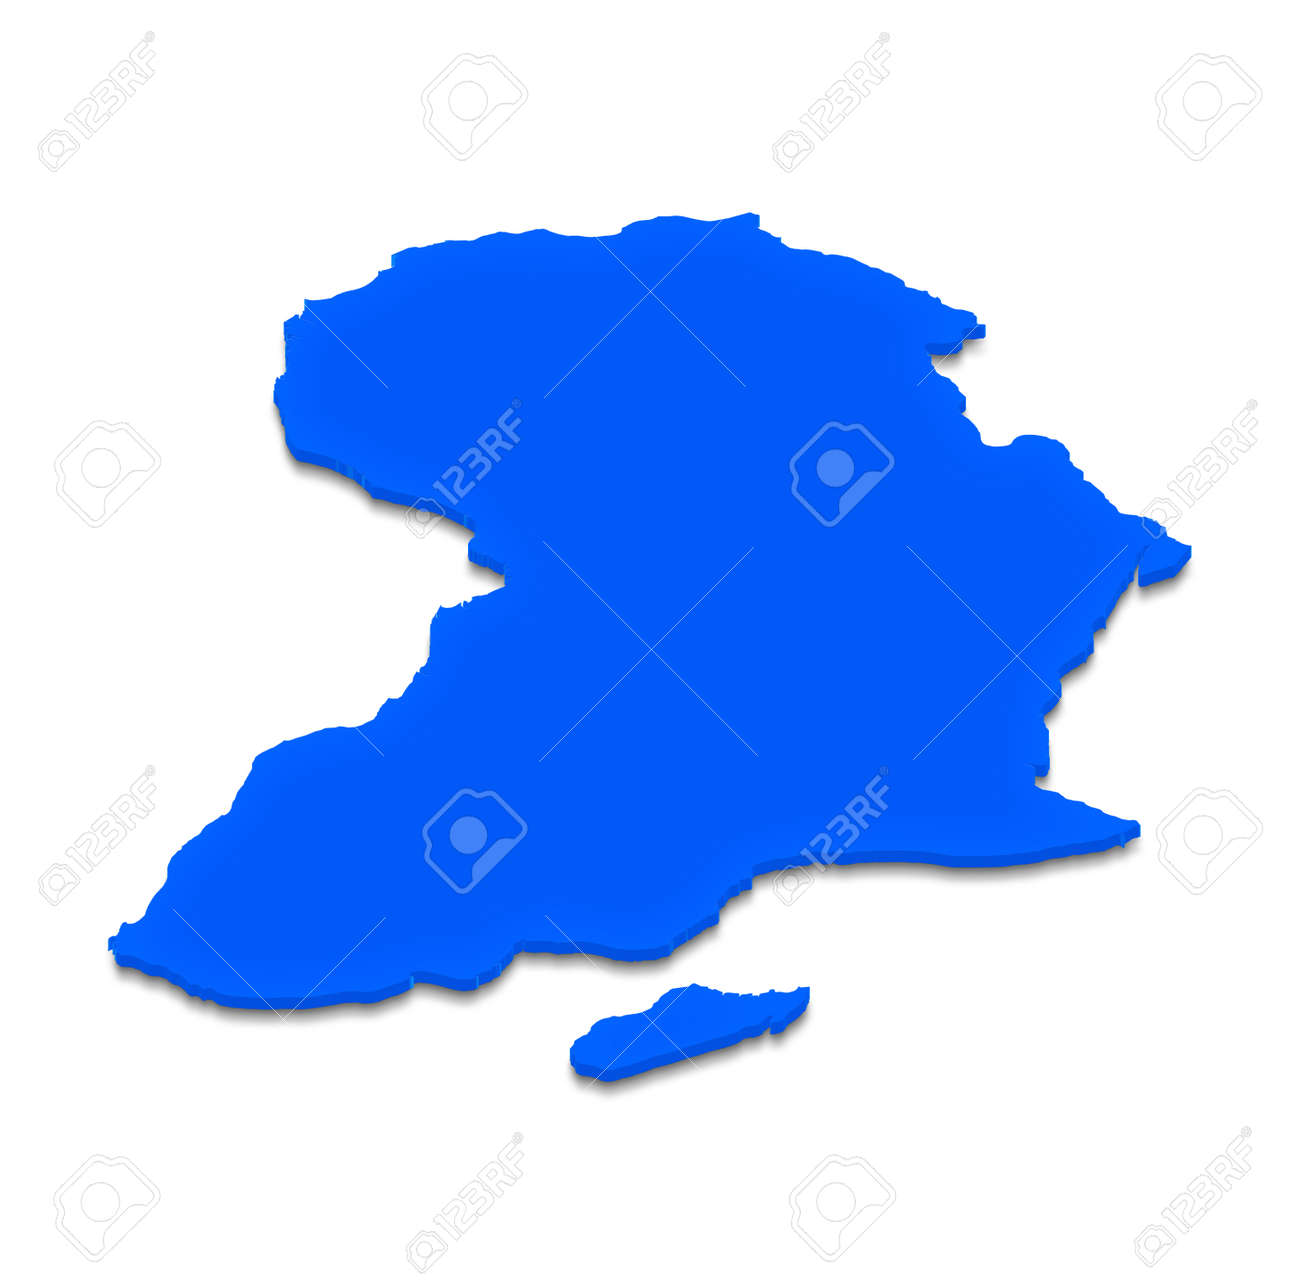 Illustration of a blue ground map of africa on isolated background illustration illustration of a blue ground map of africa on isolated background left 3d isometric projection gumiabroncs Choice Image